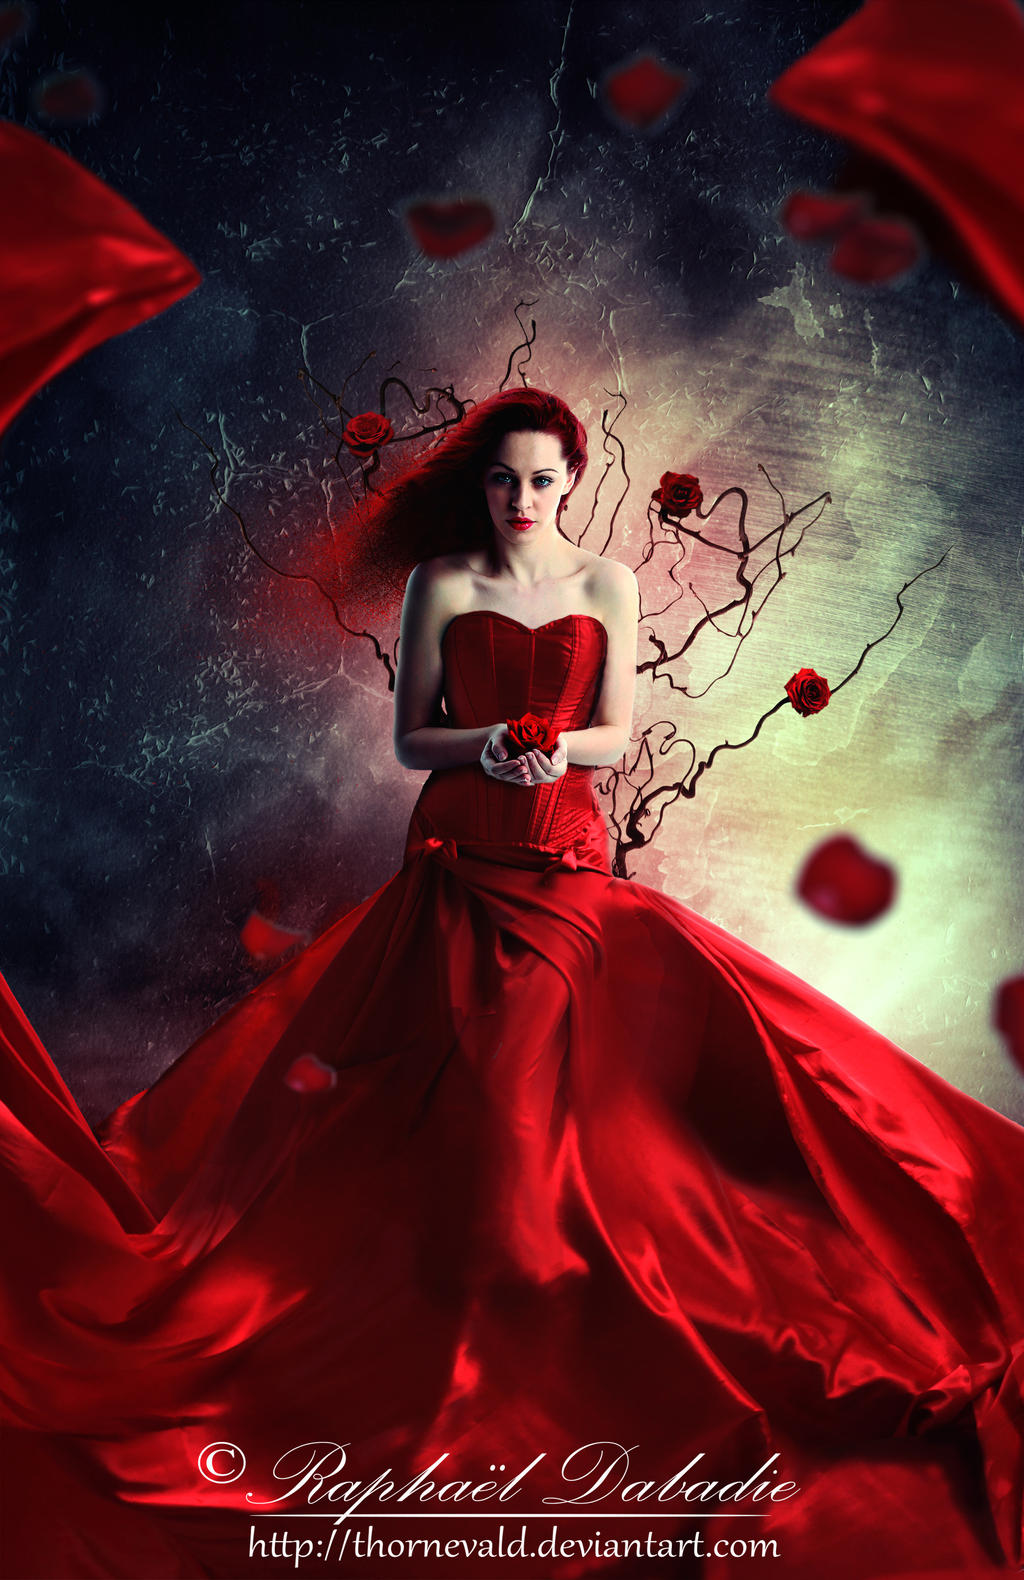 Red passion by thornevald